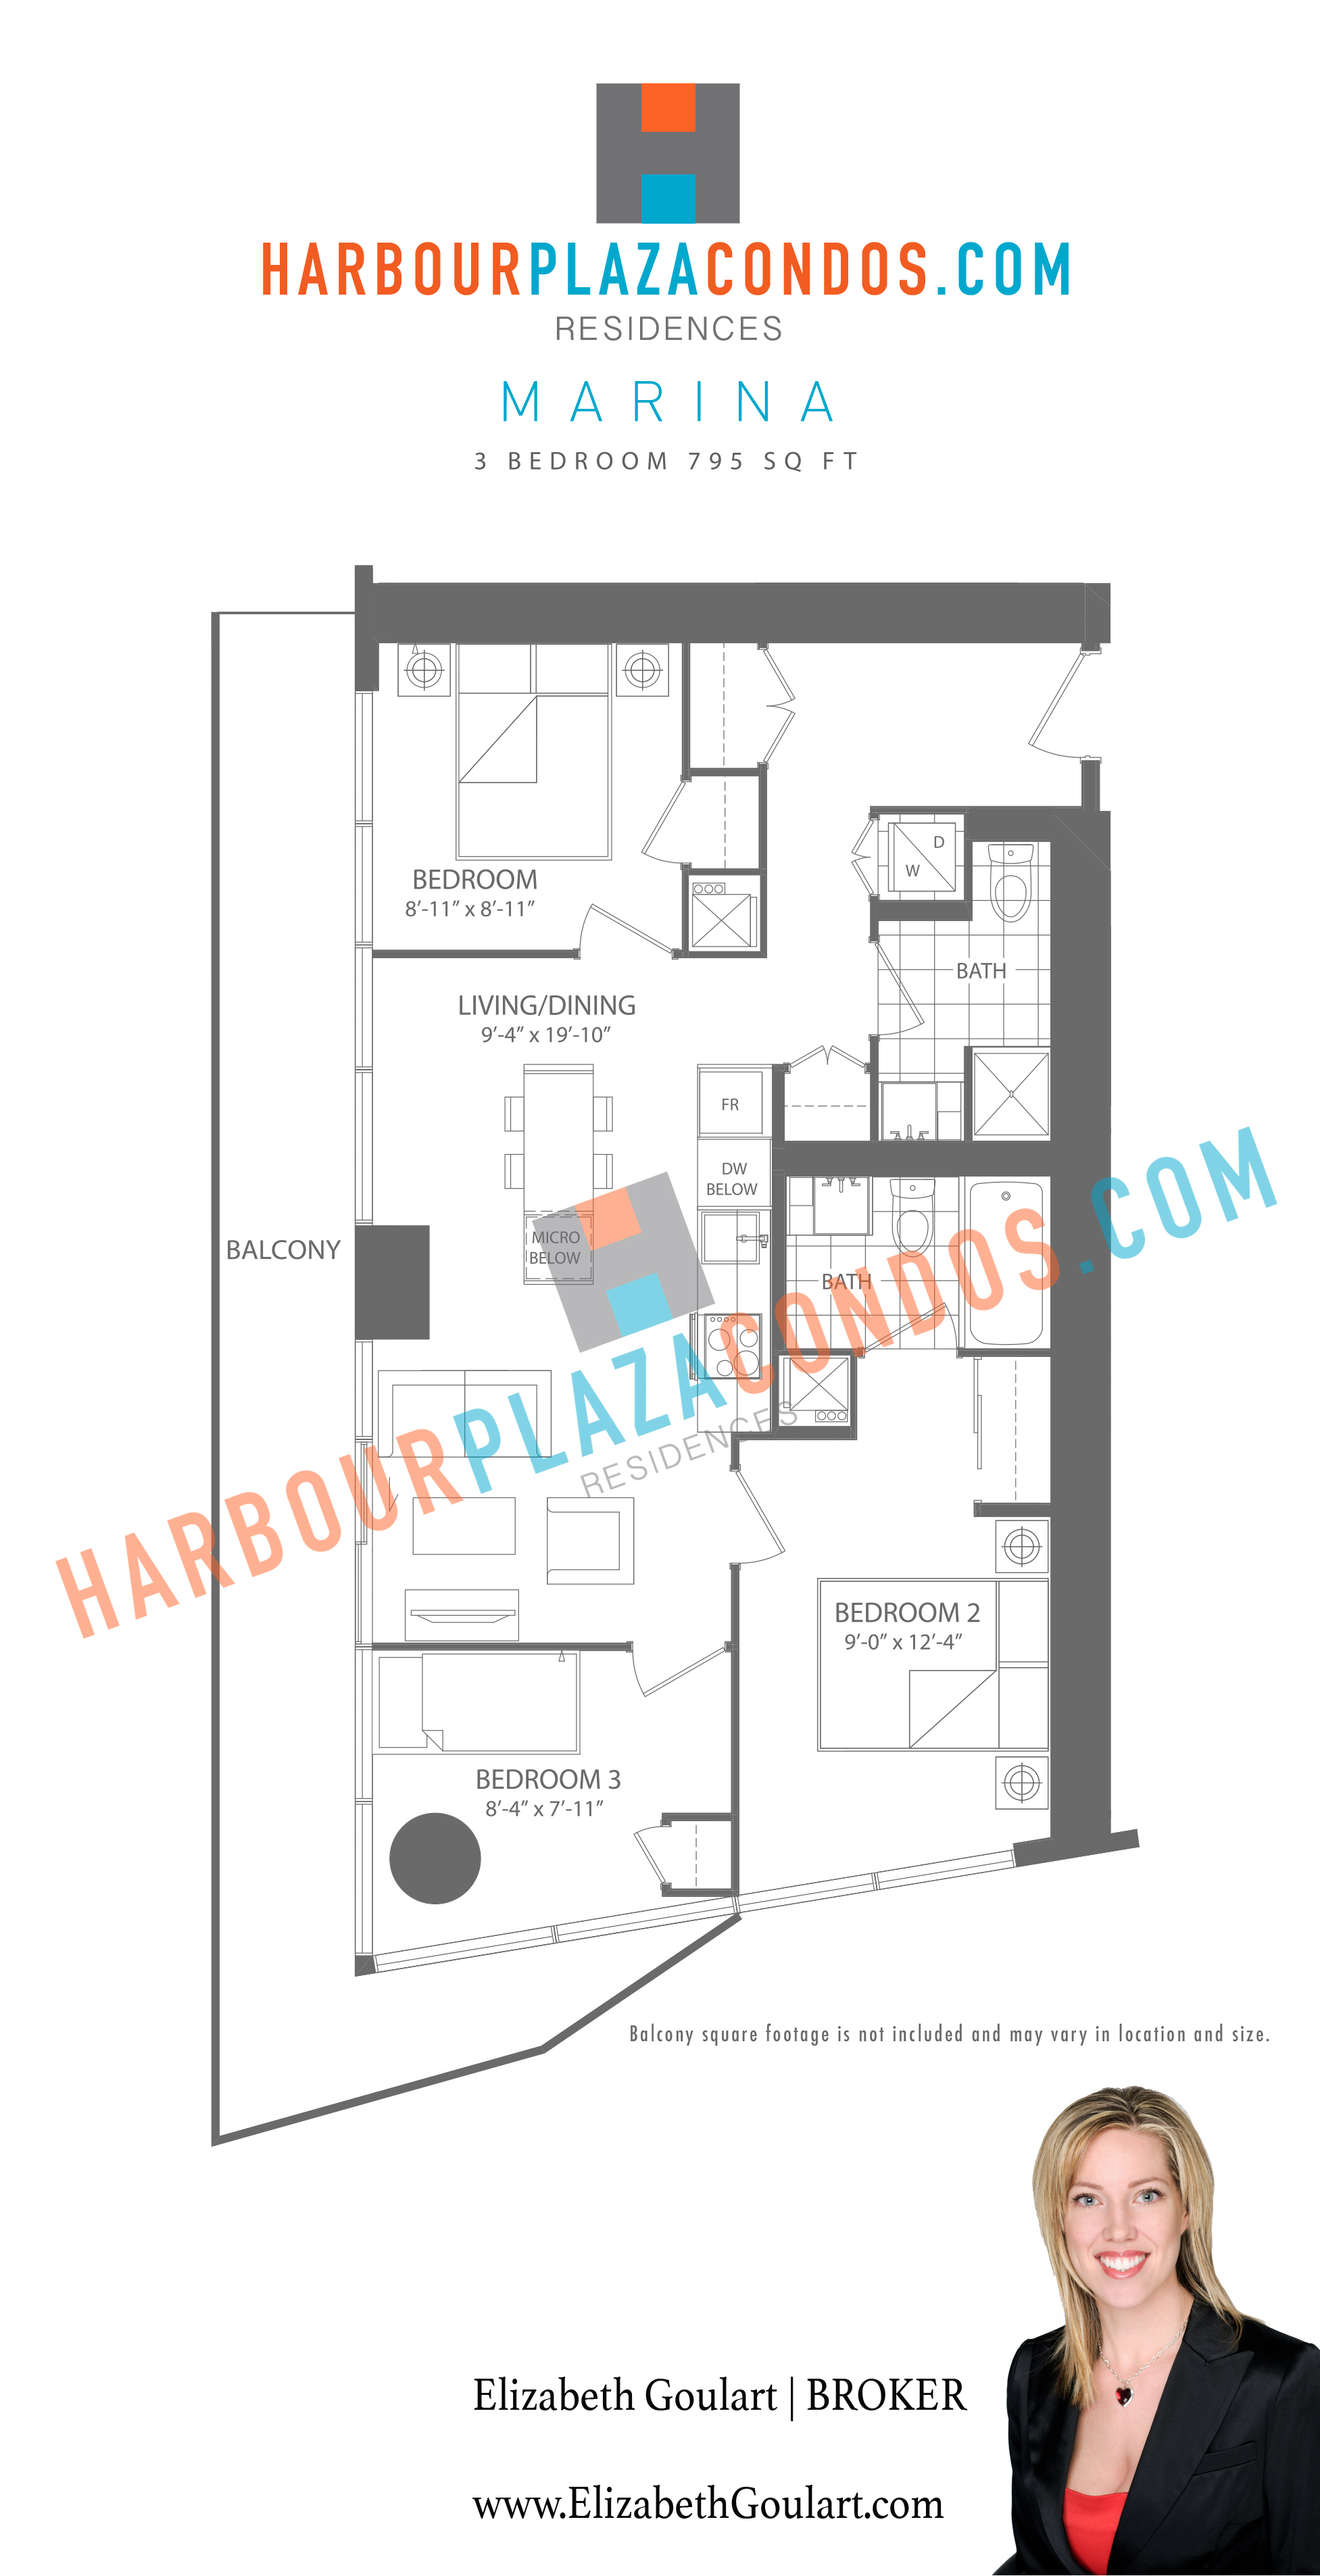 Harbour plaza condos for sale rent for 1121 bay street floor plans